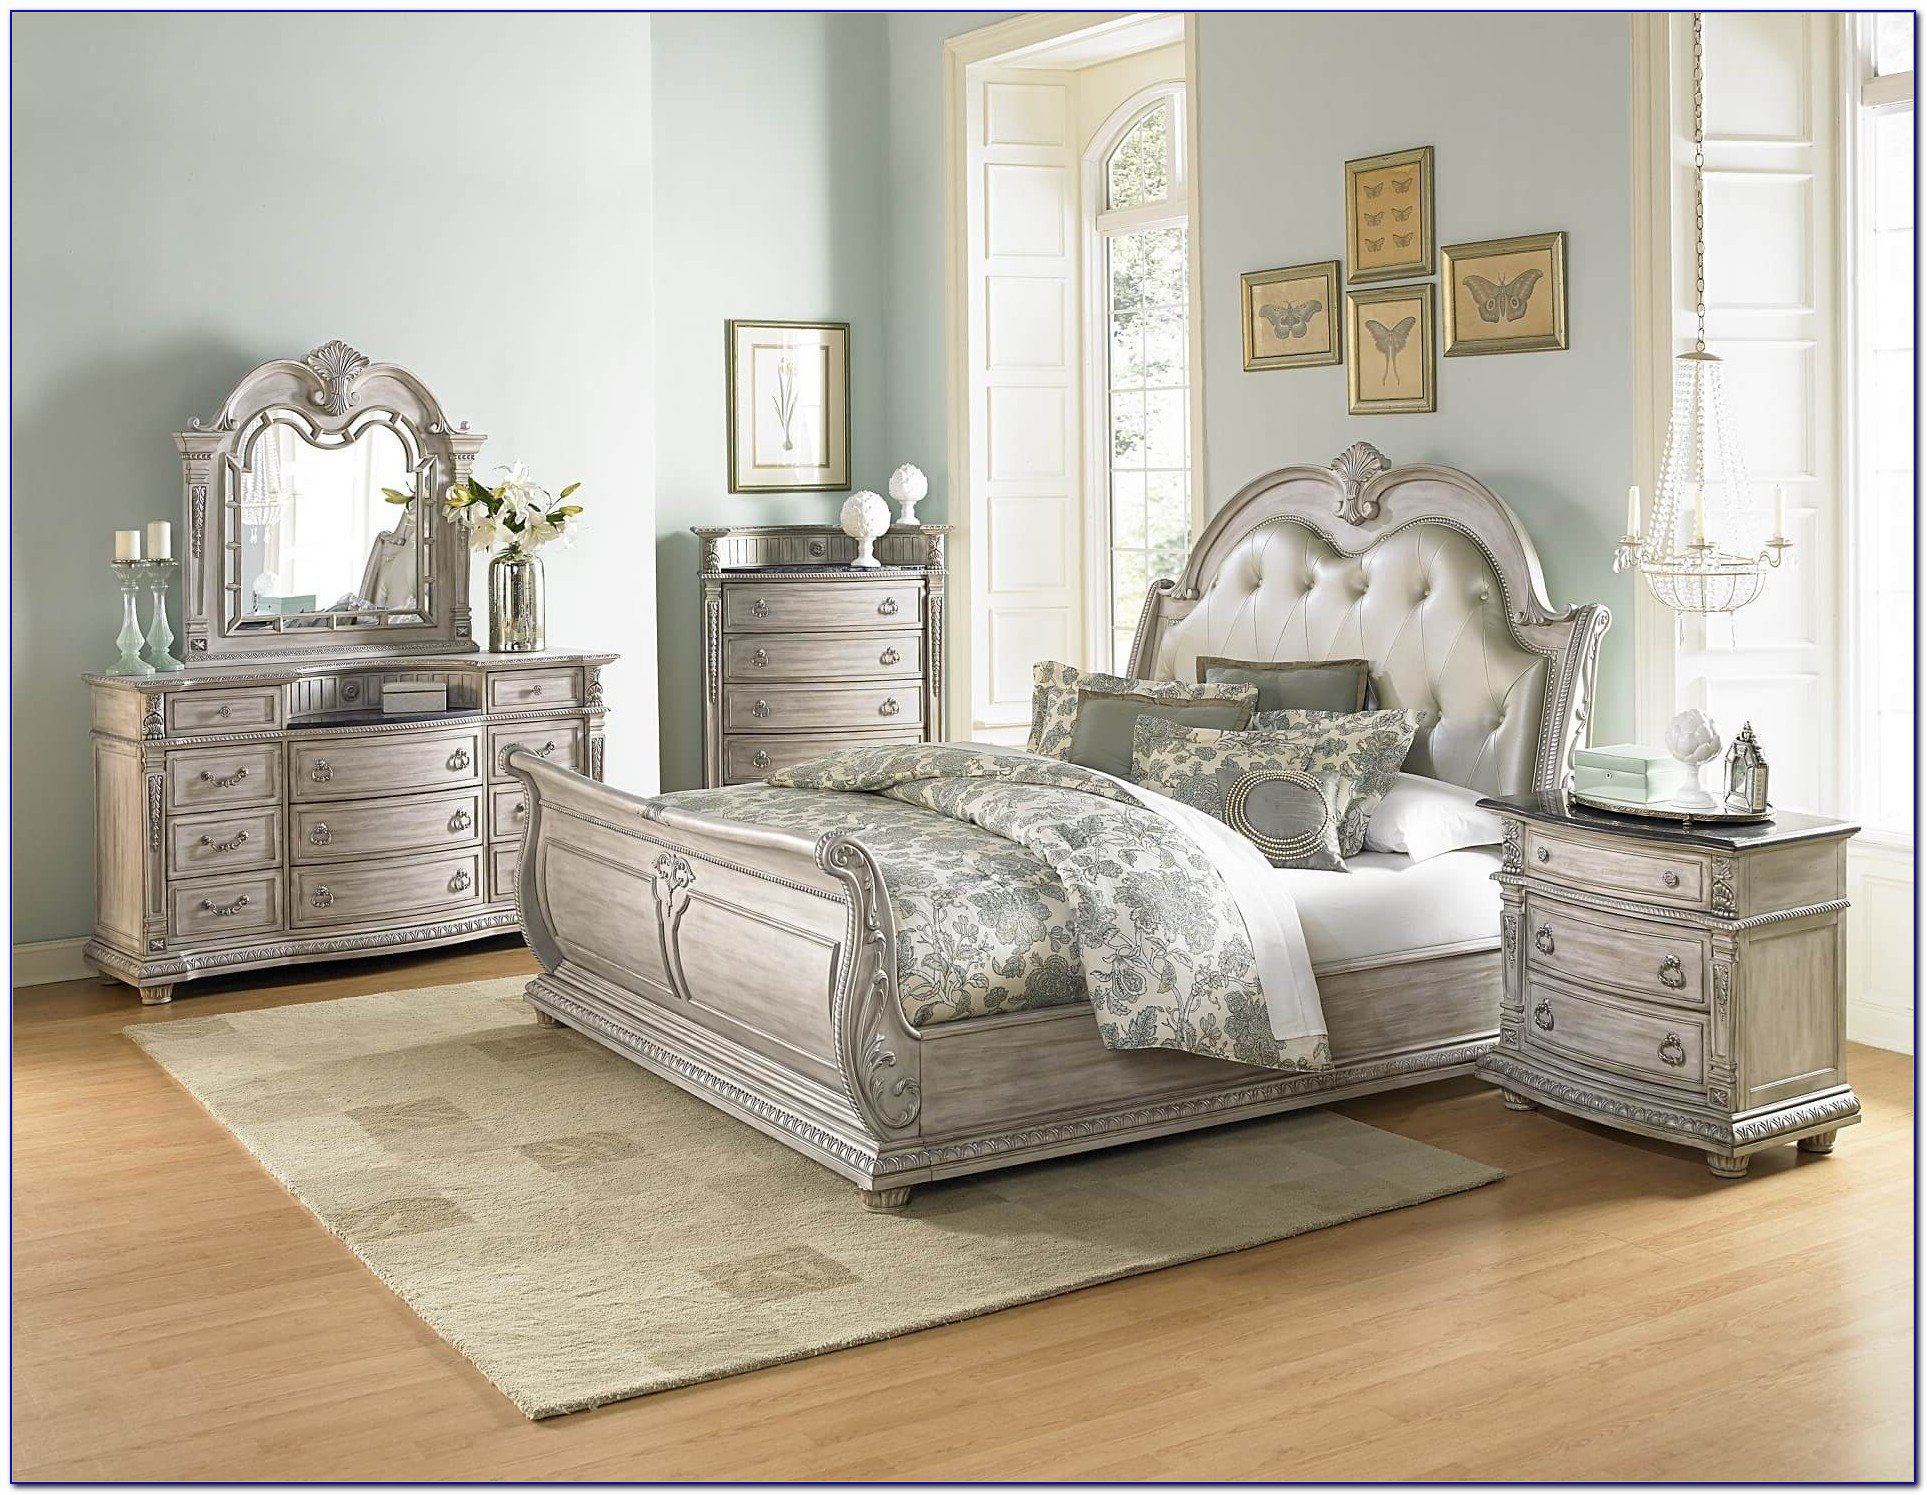 Broyhill King Bedroom Set New White Washed Bedroom Furniture Nz Home Design Ideas